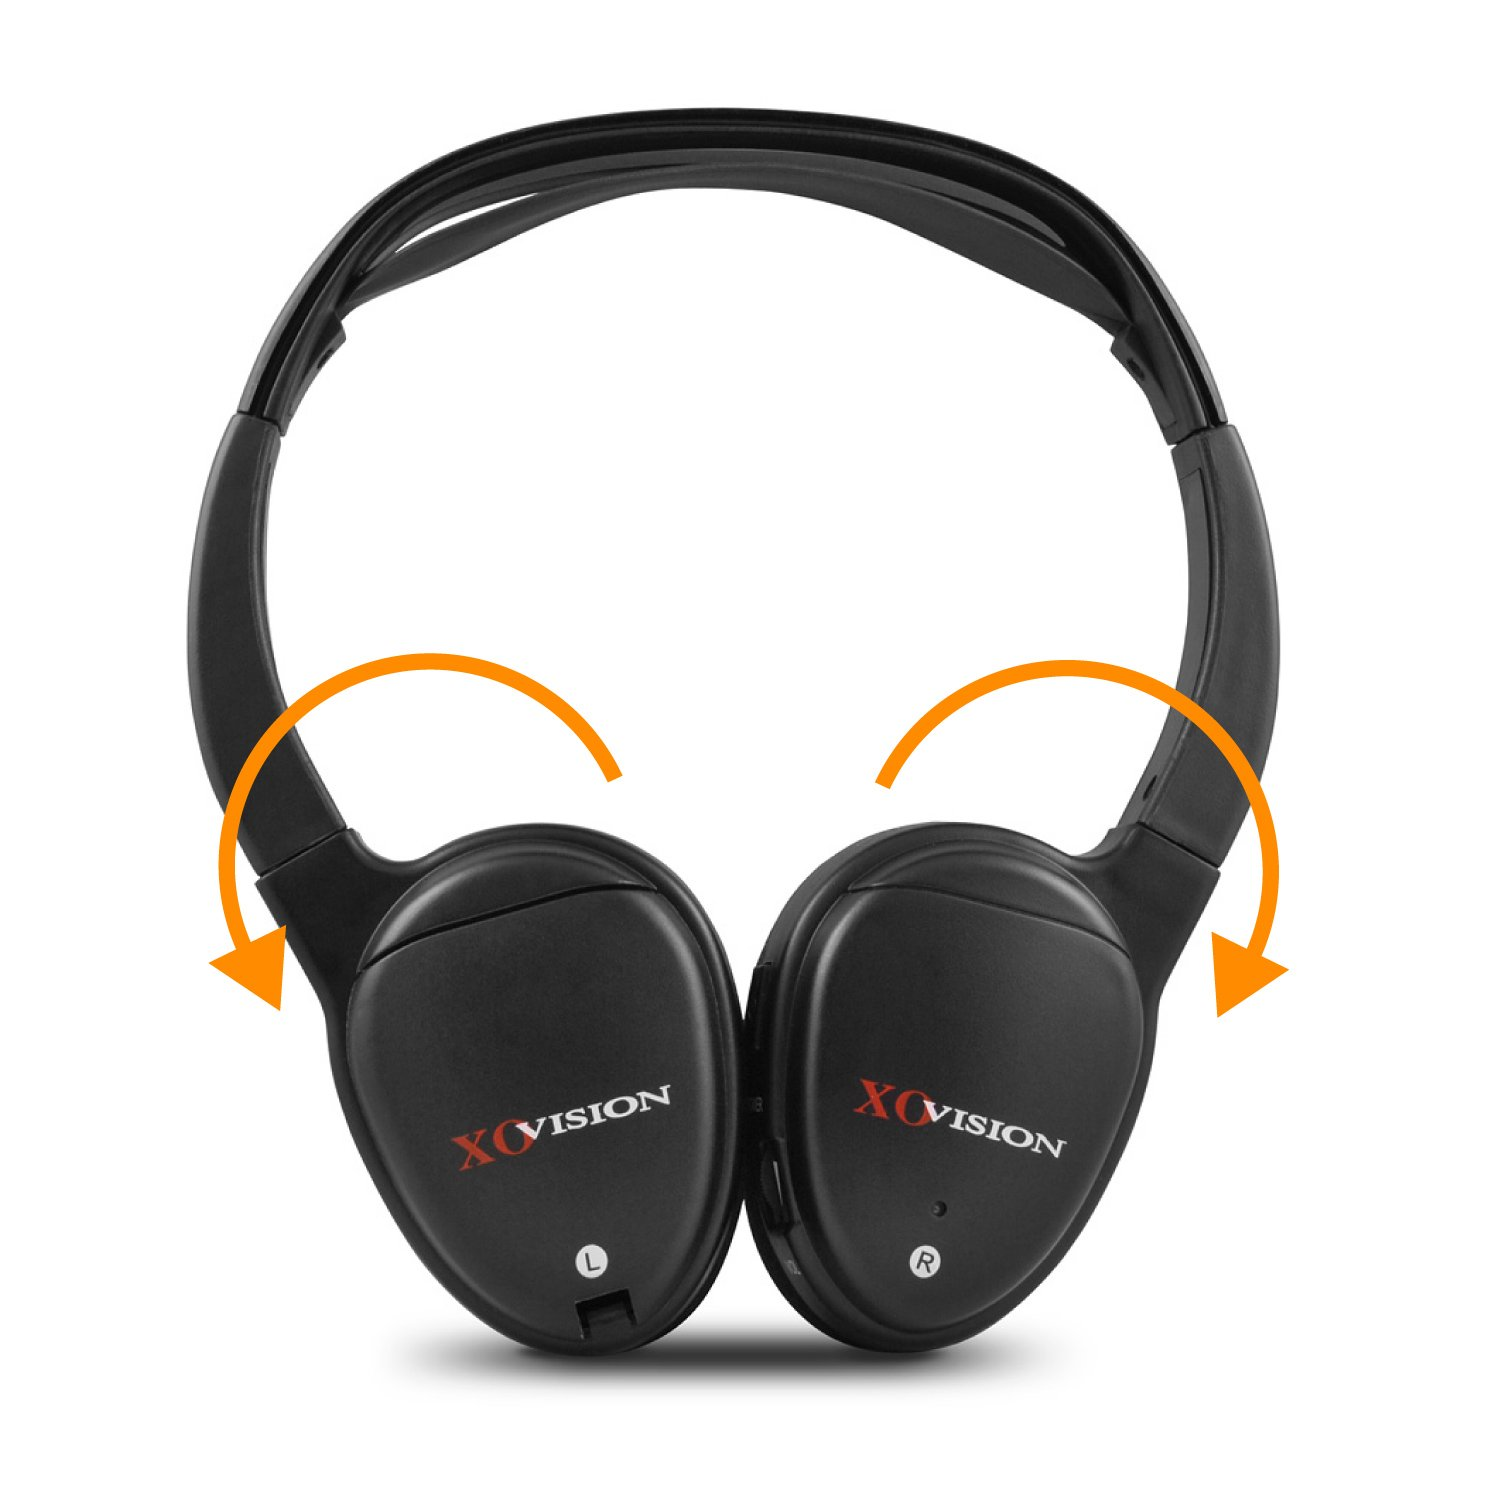 What is the average price of wireless TV headphones?